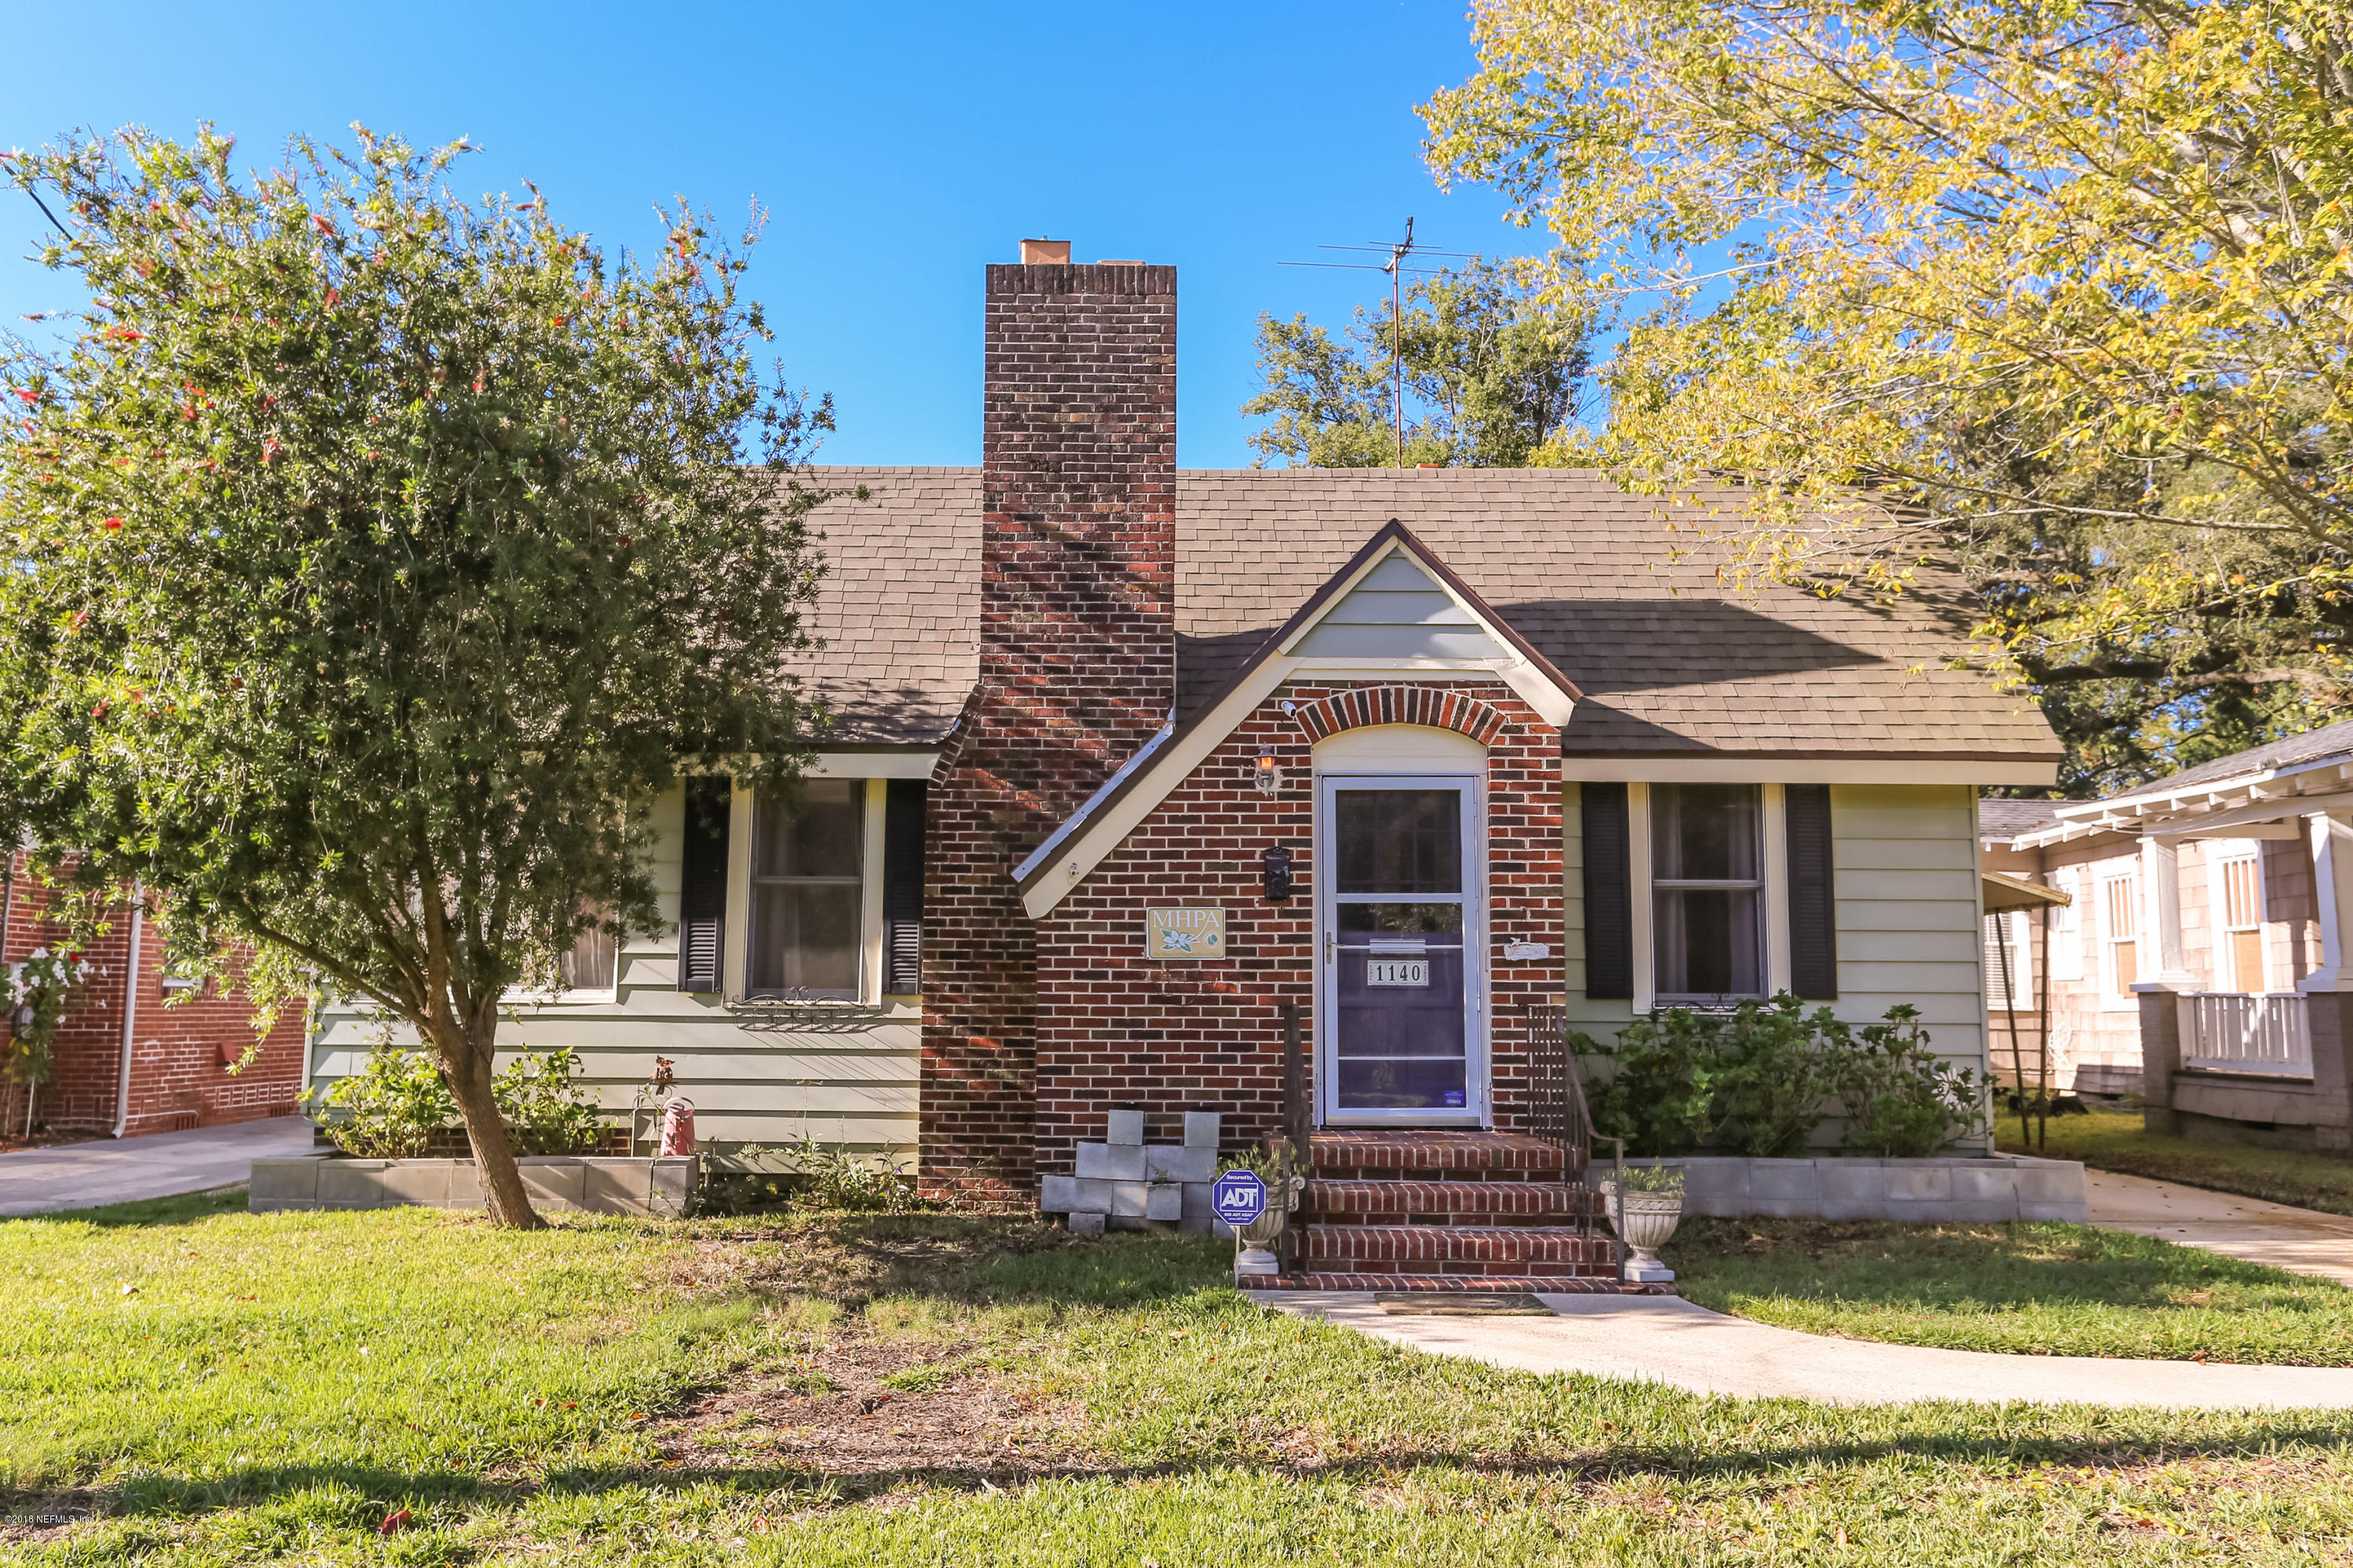 1140 INGLESIDE, JACKSONVILLE, FLORIDA 32205, 3 Bedrooms Bedrooms, ,2 BathroomsBathrooms,Residential - single family,For sale,INGLESIDE,965360